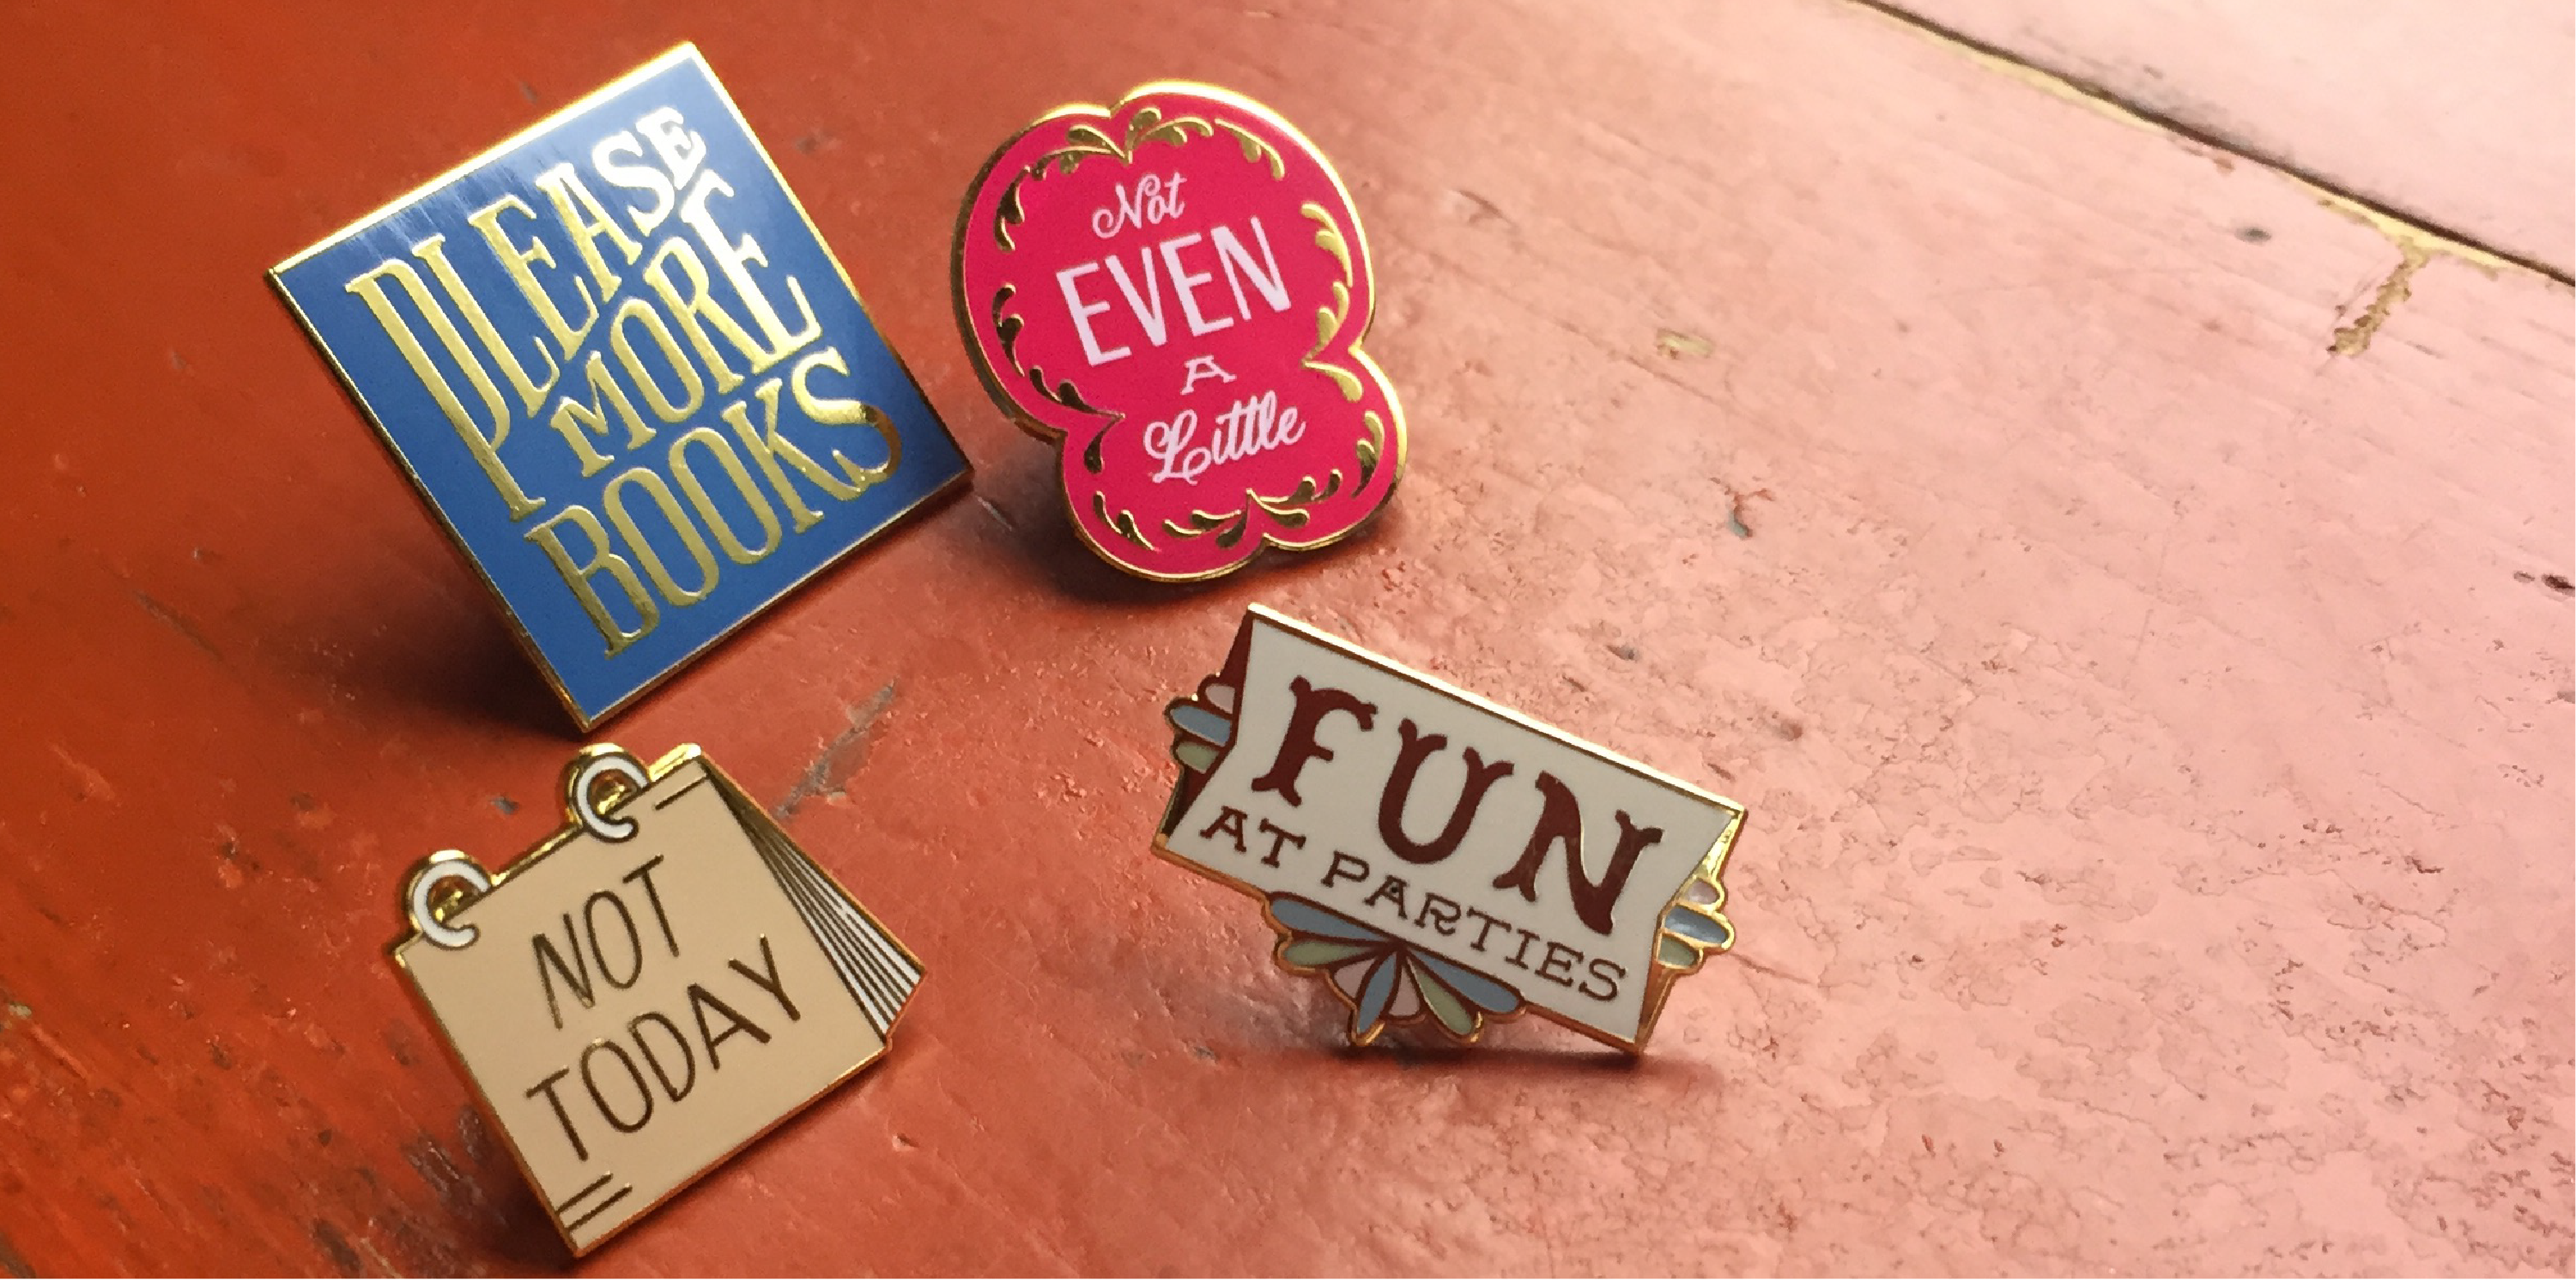 "This is a photograph of 4 pins on a wood table background. There is a blue pin that says ""Please More Books""; a red pin that says ""Not Even A Little""; a small calendar pin that reads ""Not Today"" and a small white pin that says ""Fun at Parties."""